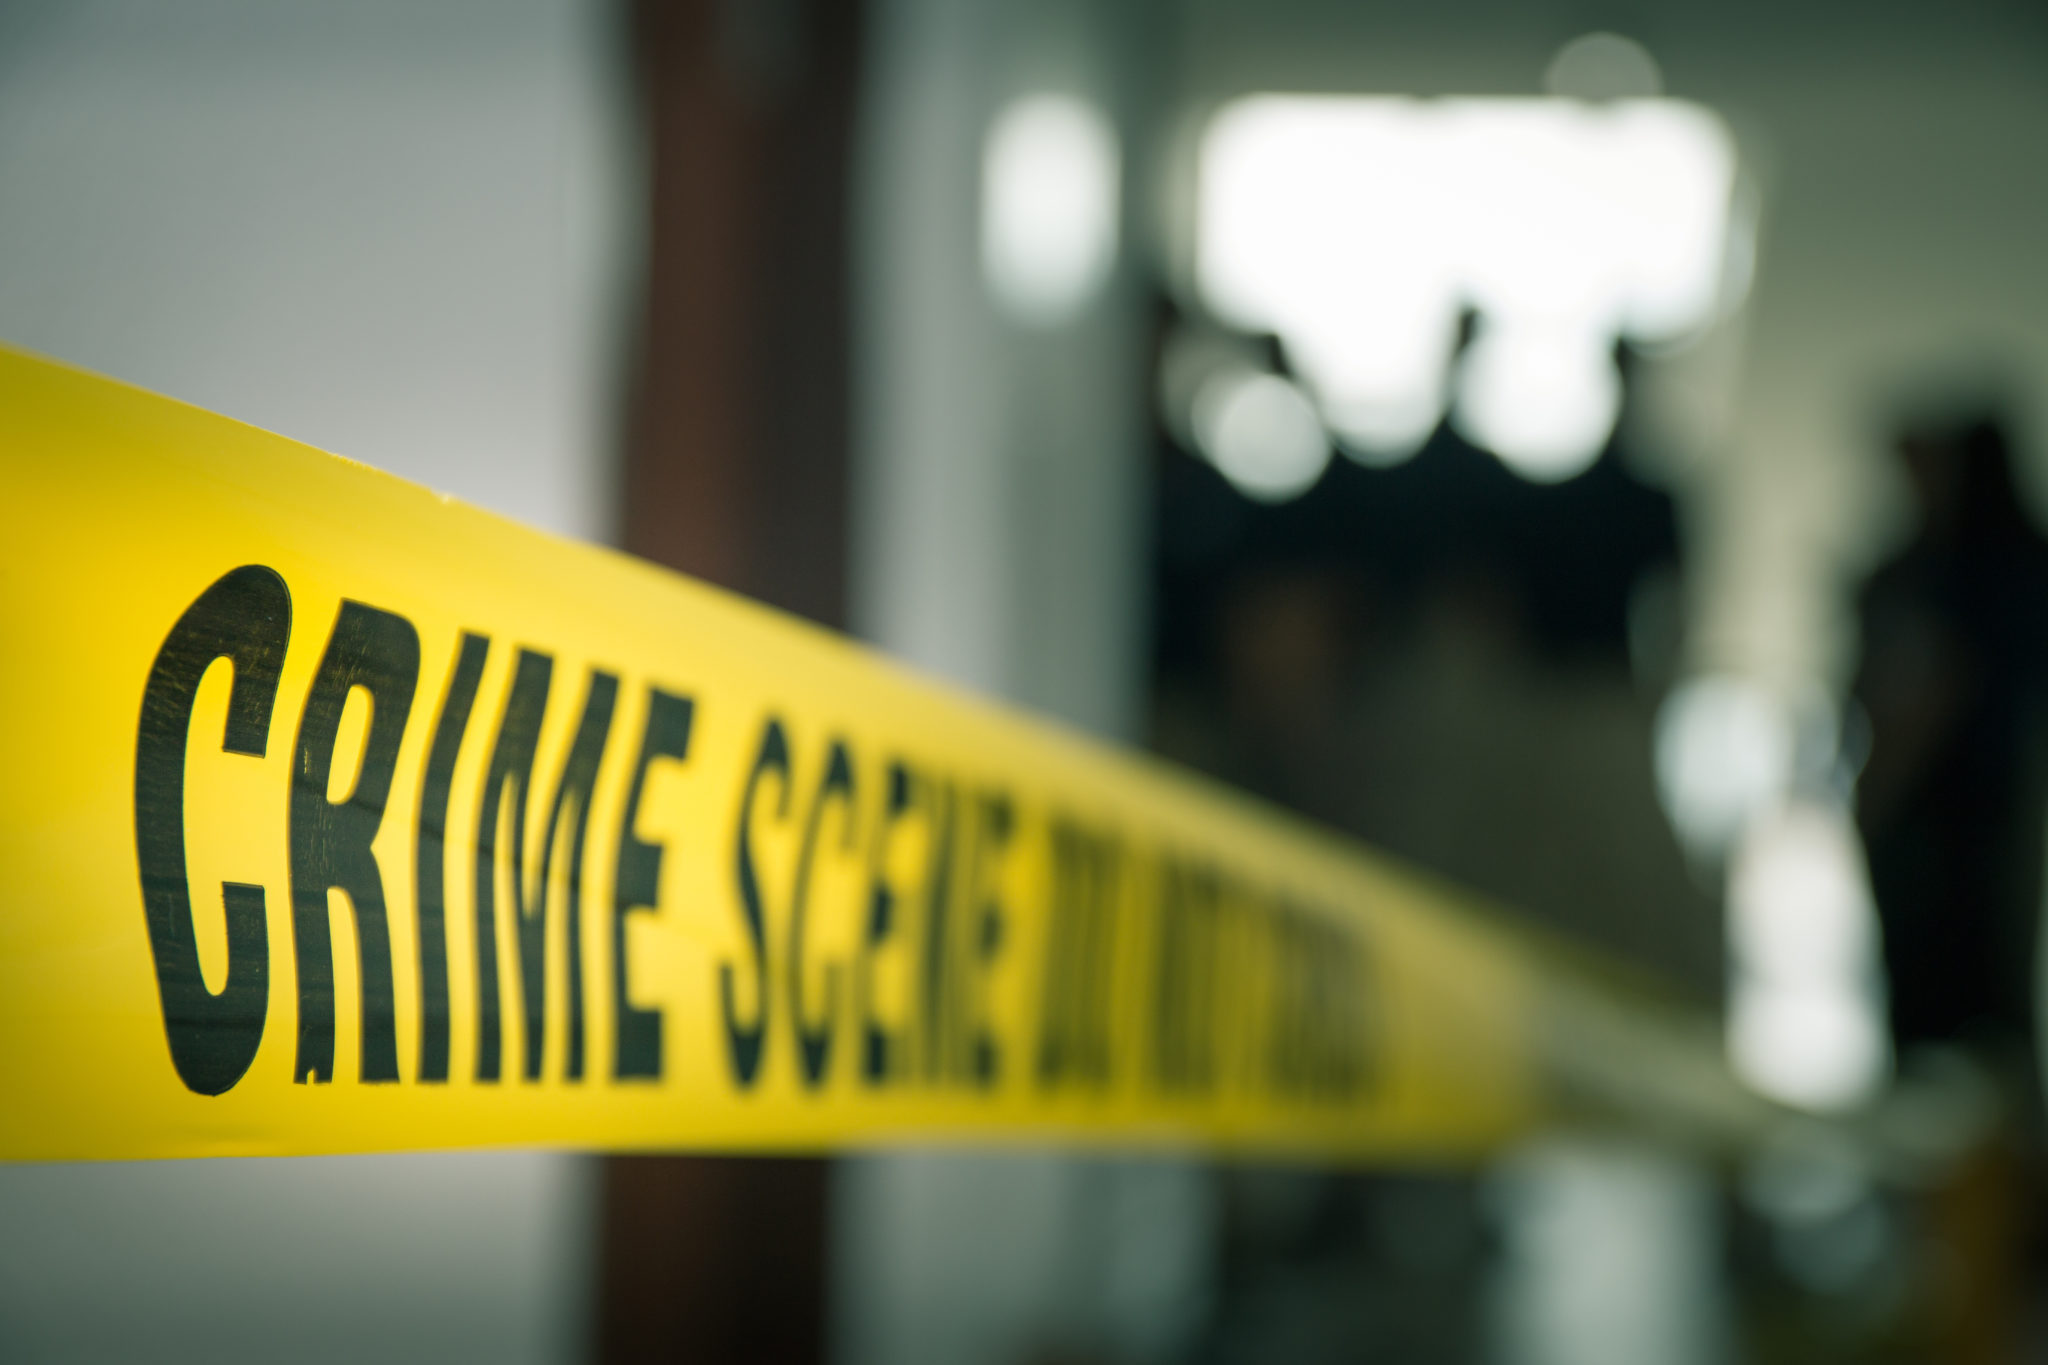 Crime,Concept,By,Police,Line,Tape,With,Blurred,Forensic,Law